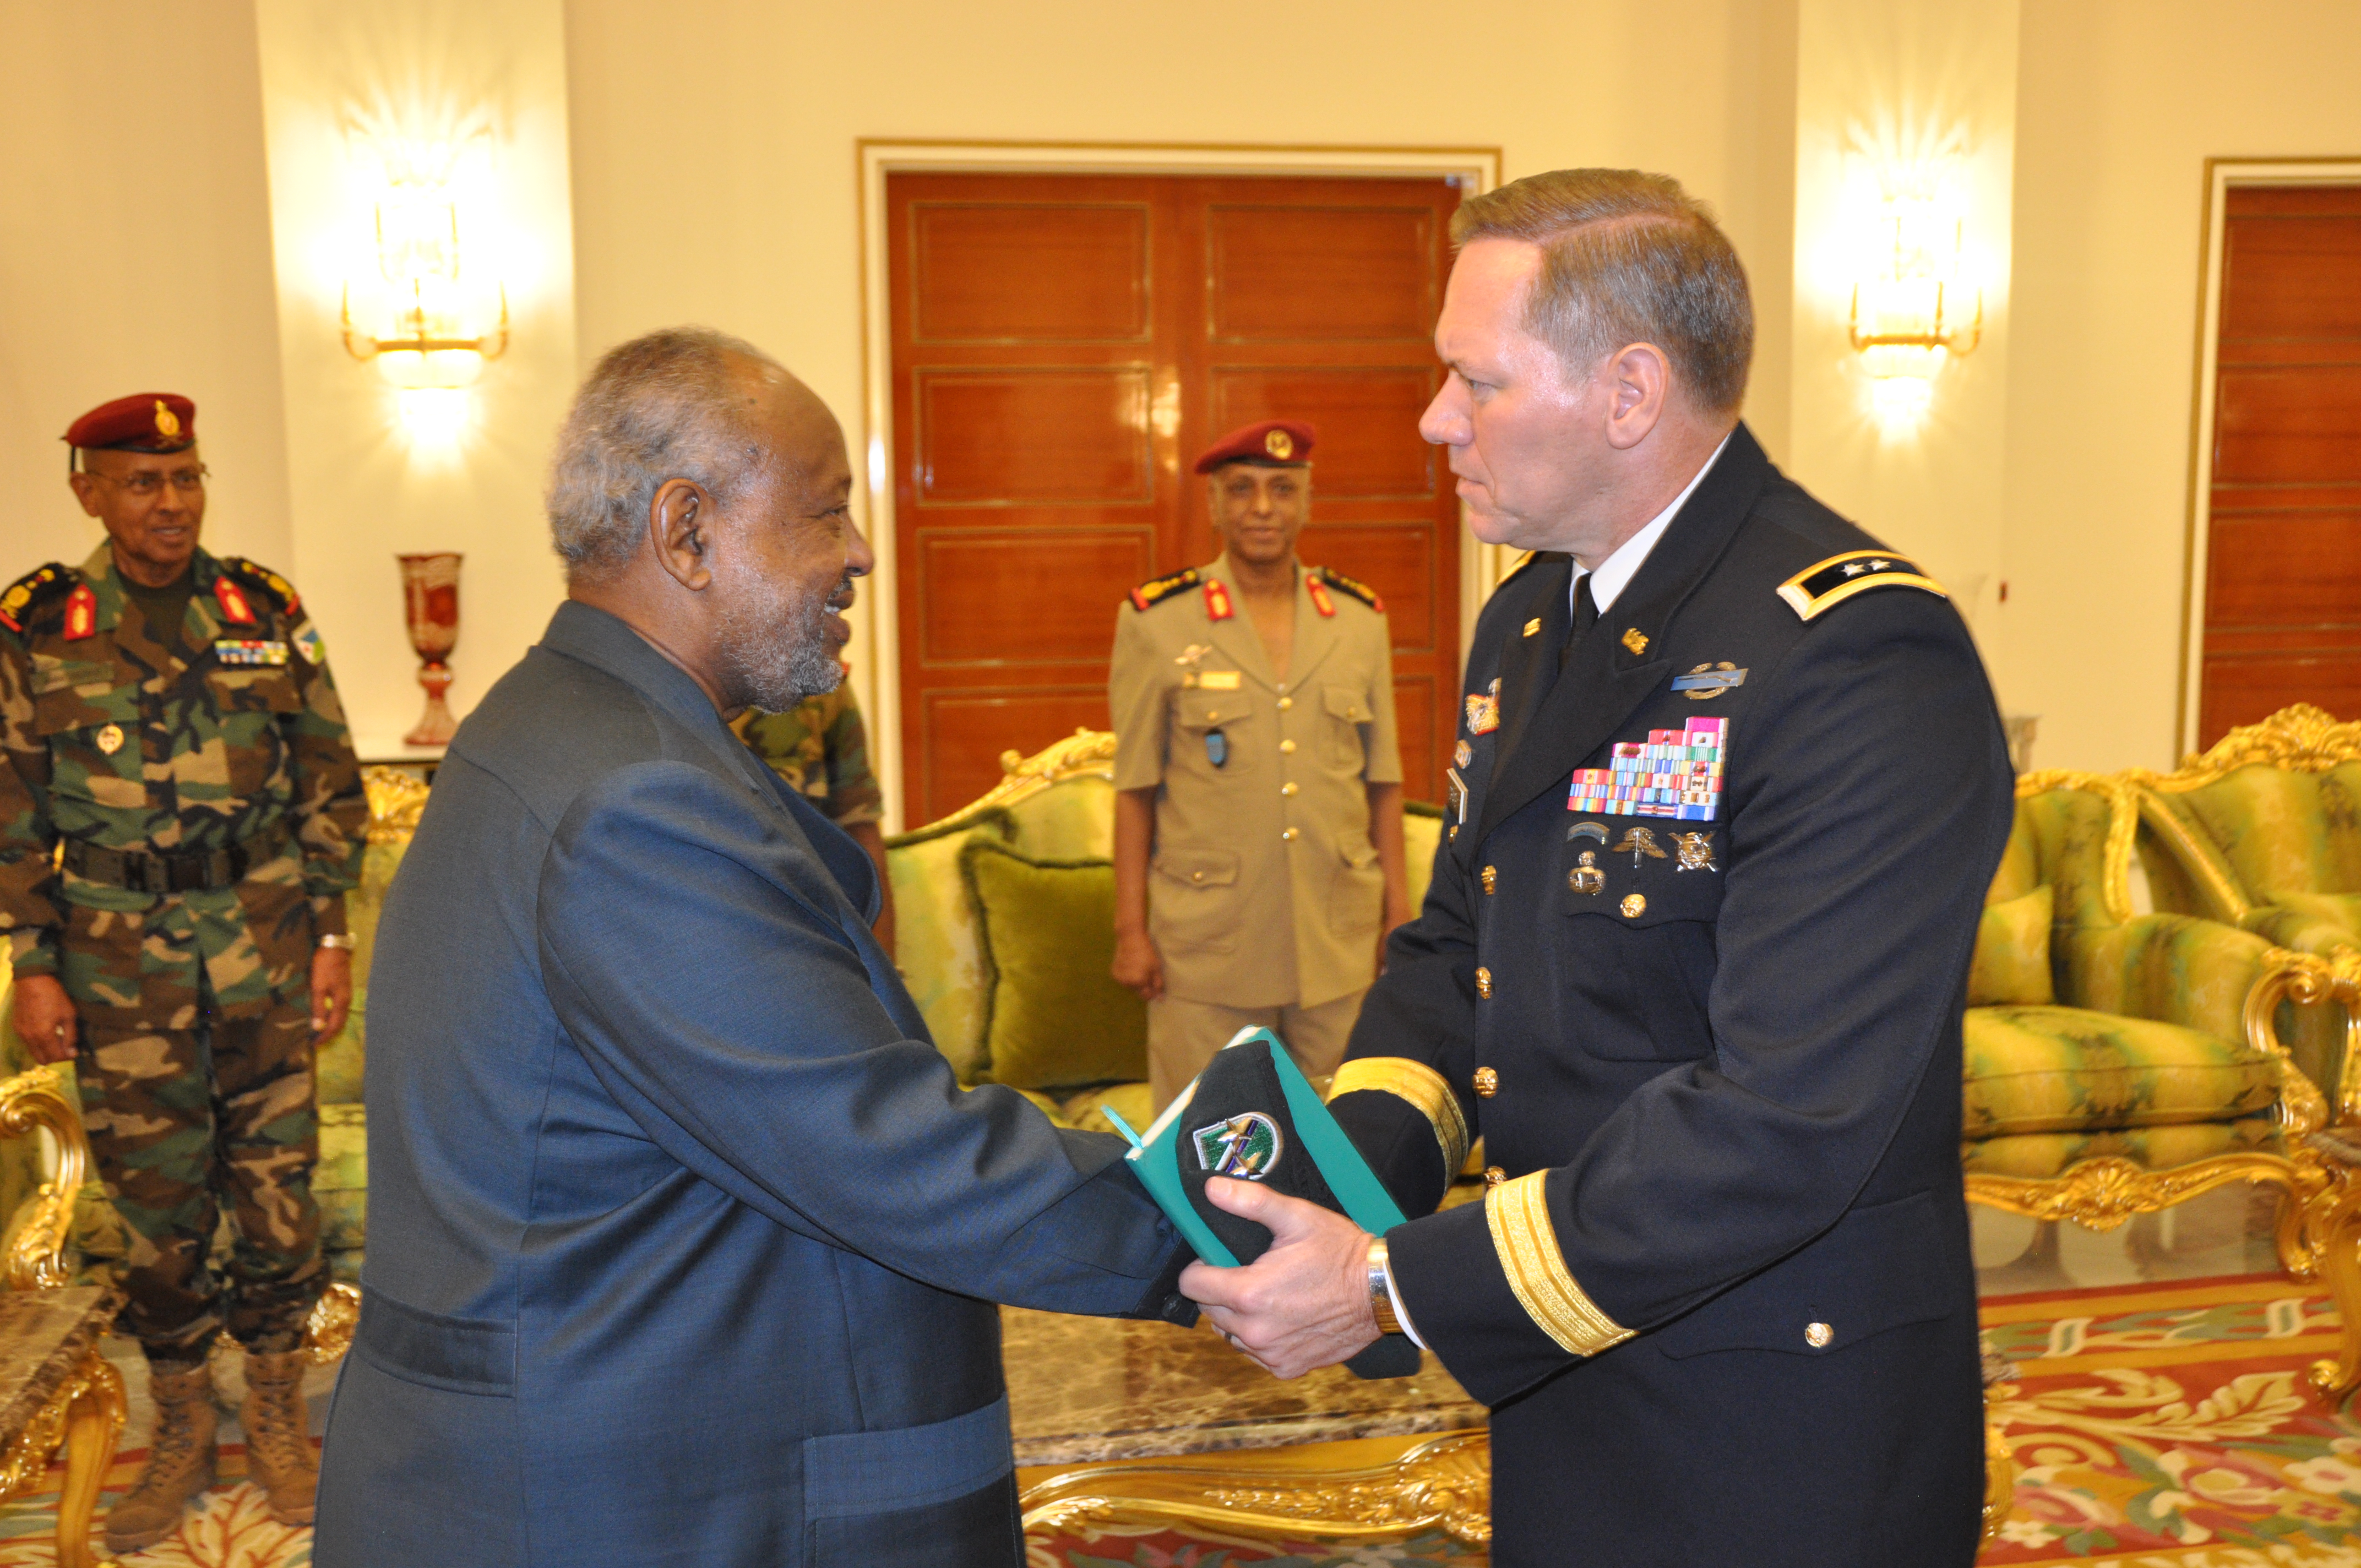 "DJIBOUTI CITY, Djibouti—U.S. Army Maj. Gen. James Craig, commander, Combined Joint Task Force Horn of Africa, shakes hands with Djiboutian President Ismail Omar Guelleh, on Nov. 29, 2018, in Djibouti City, Djibouti, during a visit conducted by him and U.S. Marine Gen. Thomas D. Waldhauser, commander of United States Africa Command (AFRICOM). ""We have a strong, cooperative relationship with the Republic of Djibouti,"" said Waldhauser, ""and we view security and access to Djibouti as a top priority.""